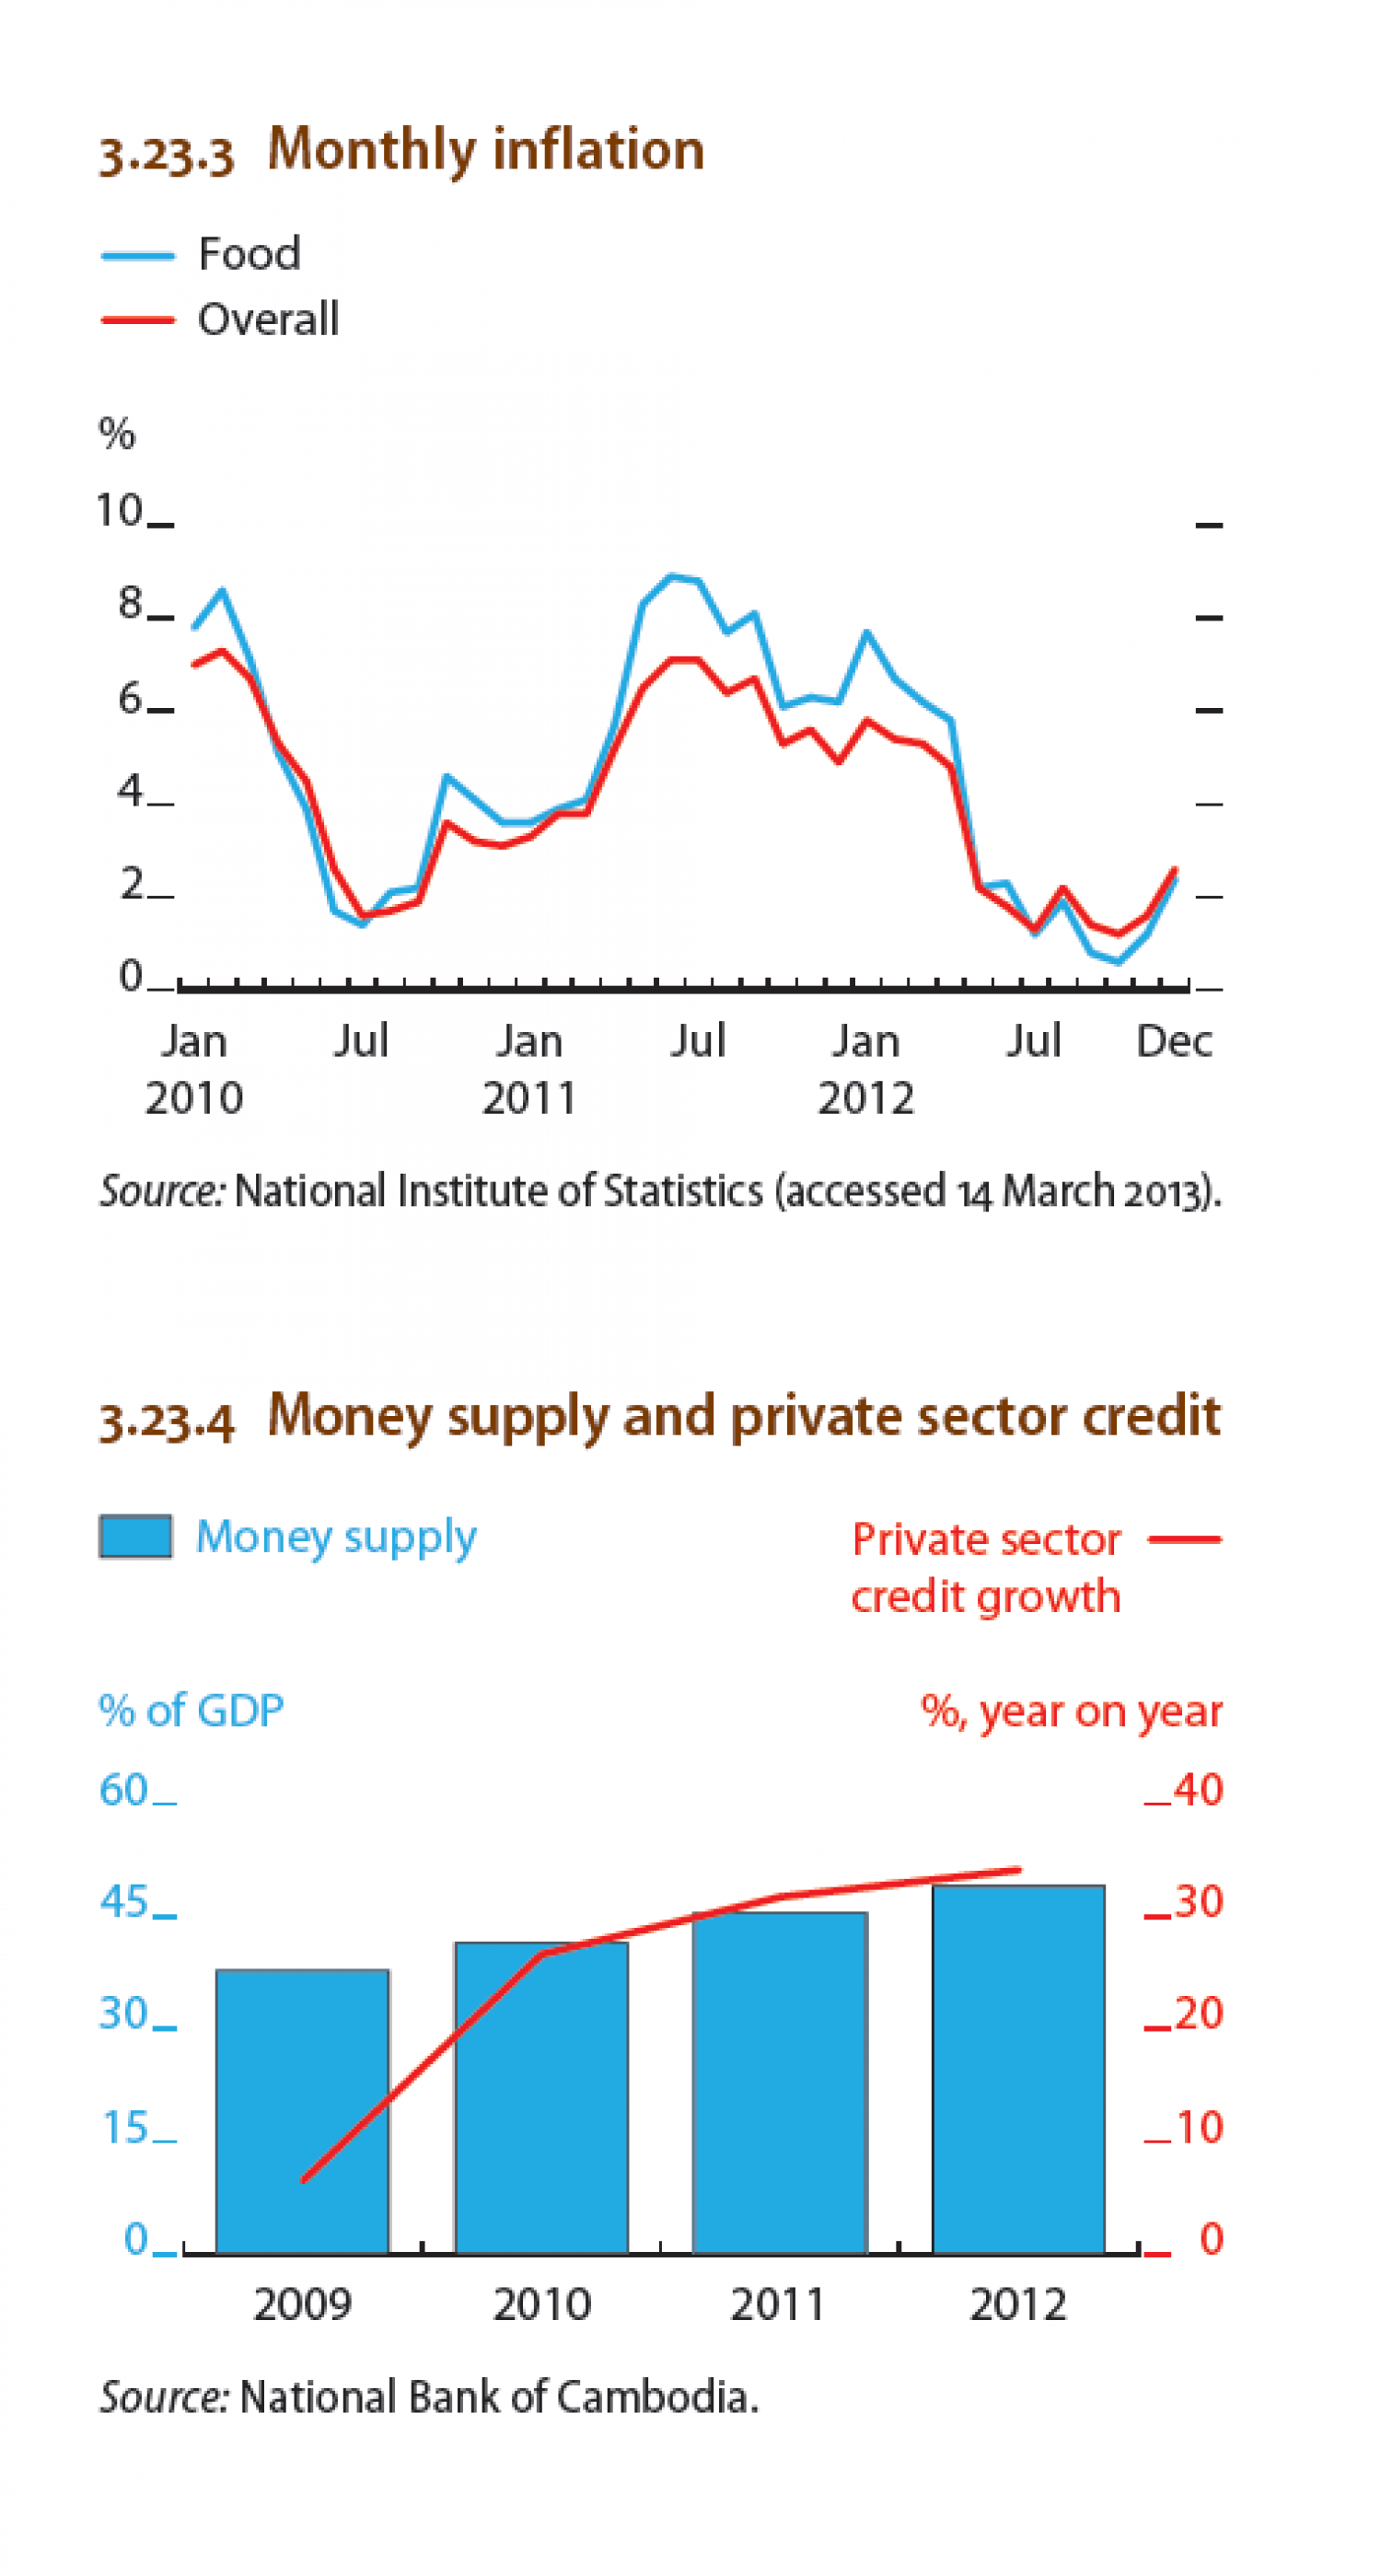 Cambodia - Monthly Inflation, Money supply and private sector credit Infographic